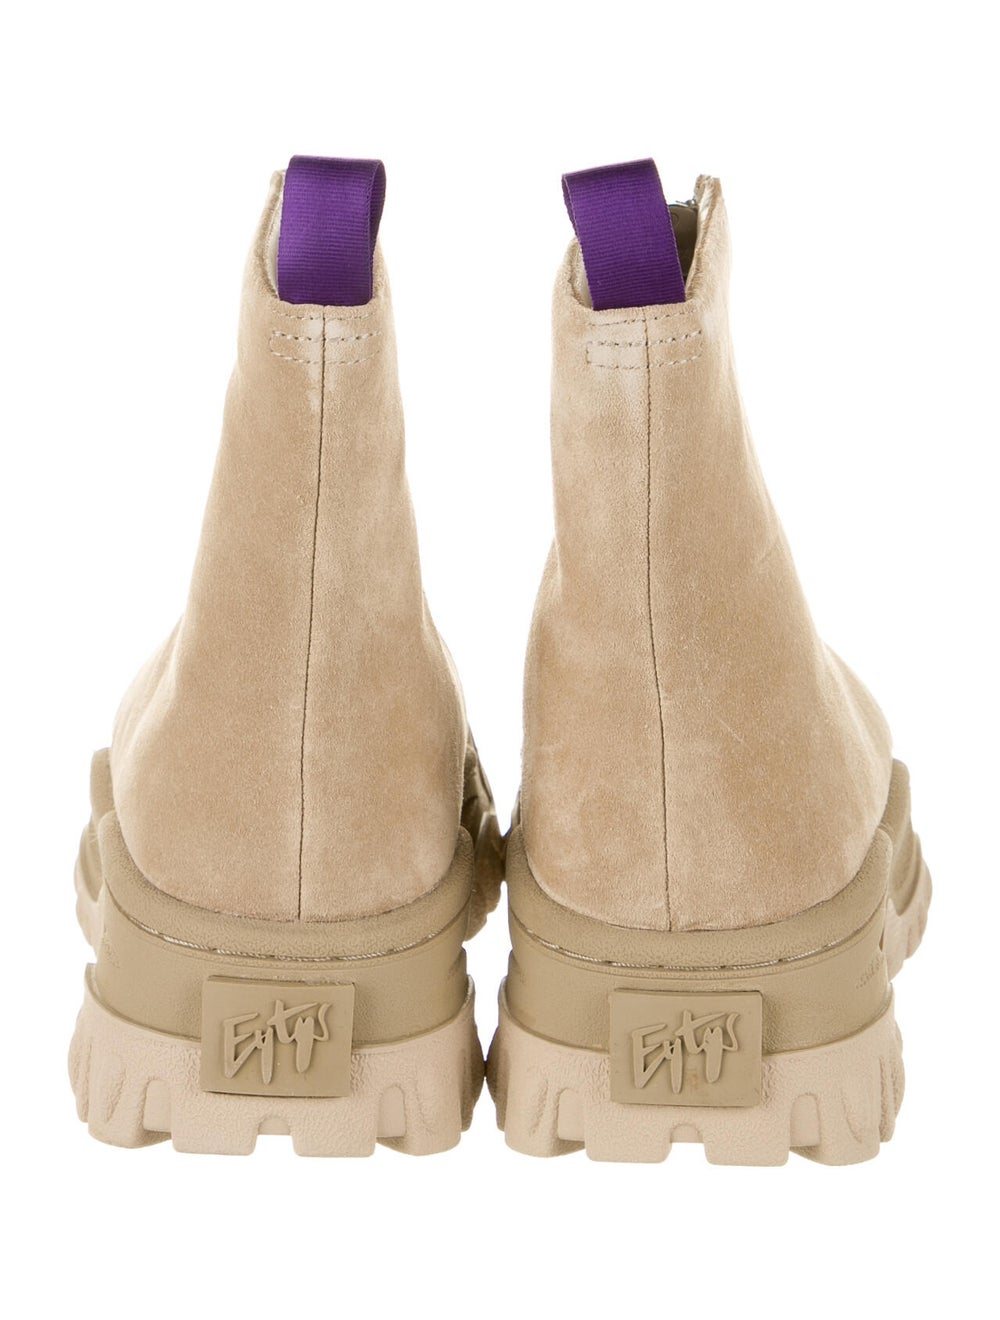 Eytys Suede Boots - image 4